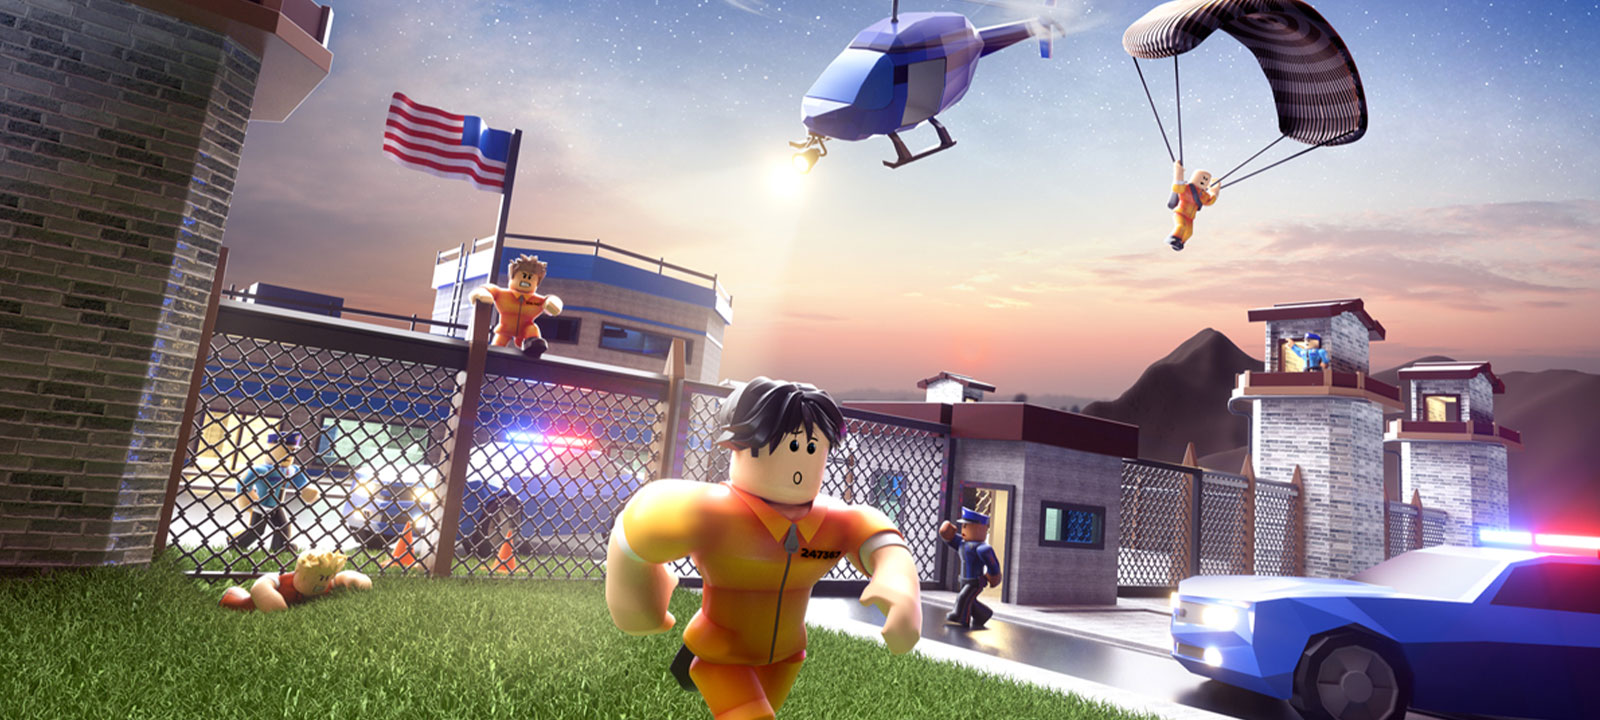 Roblox characters escaping from prison while police chase after them in Jailbreak game